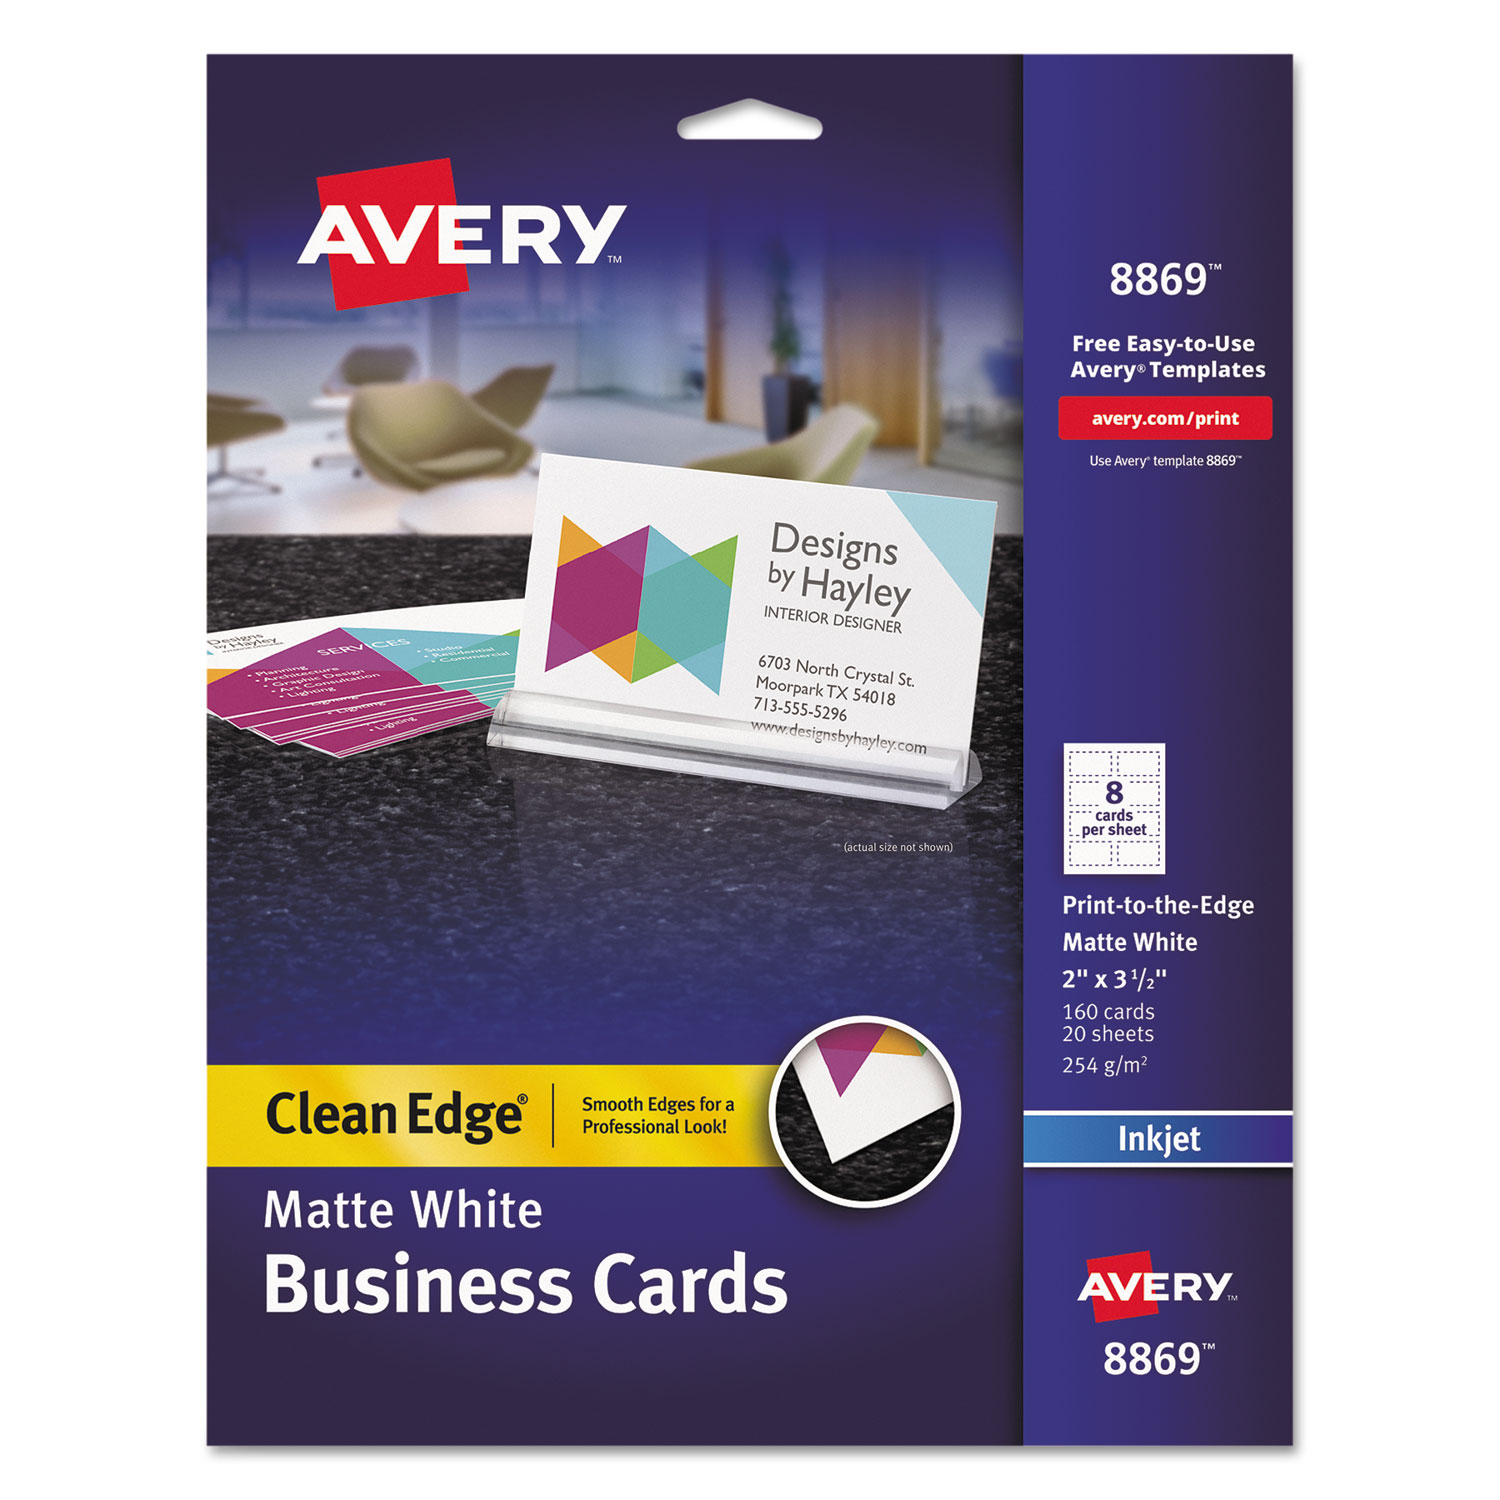 Print to the edge true print business cards by avery ave8869 ave8869 thumbnail 1 reheart Images